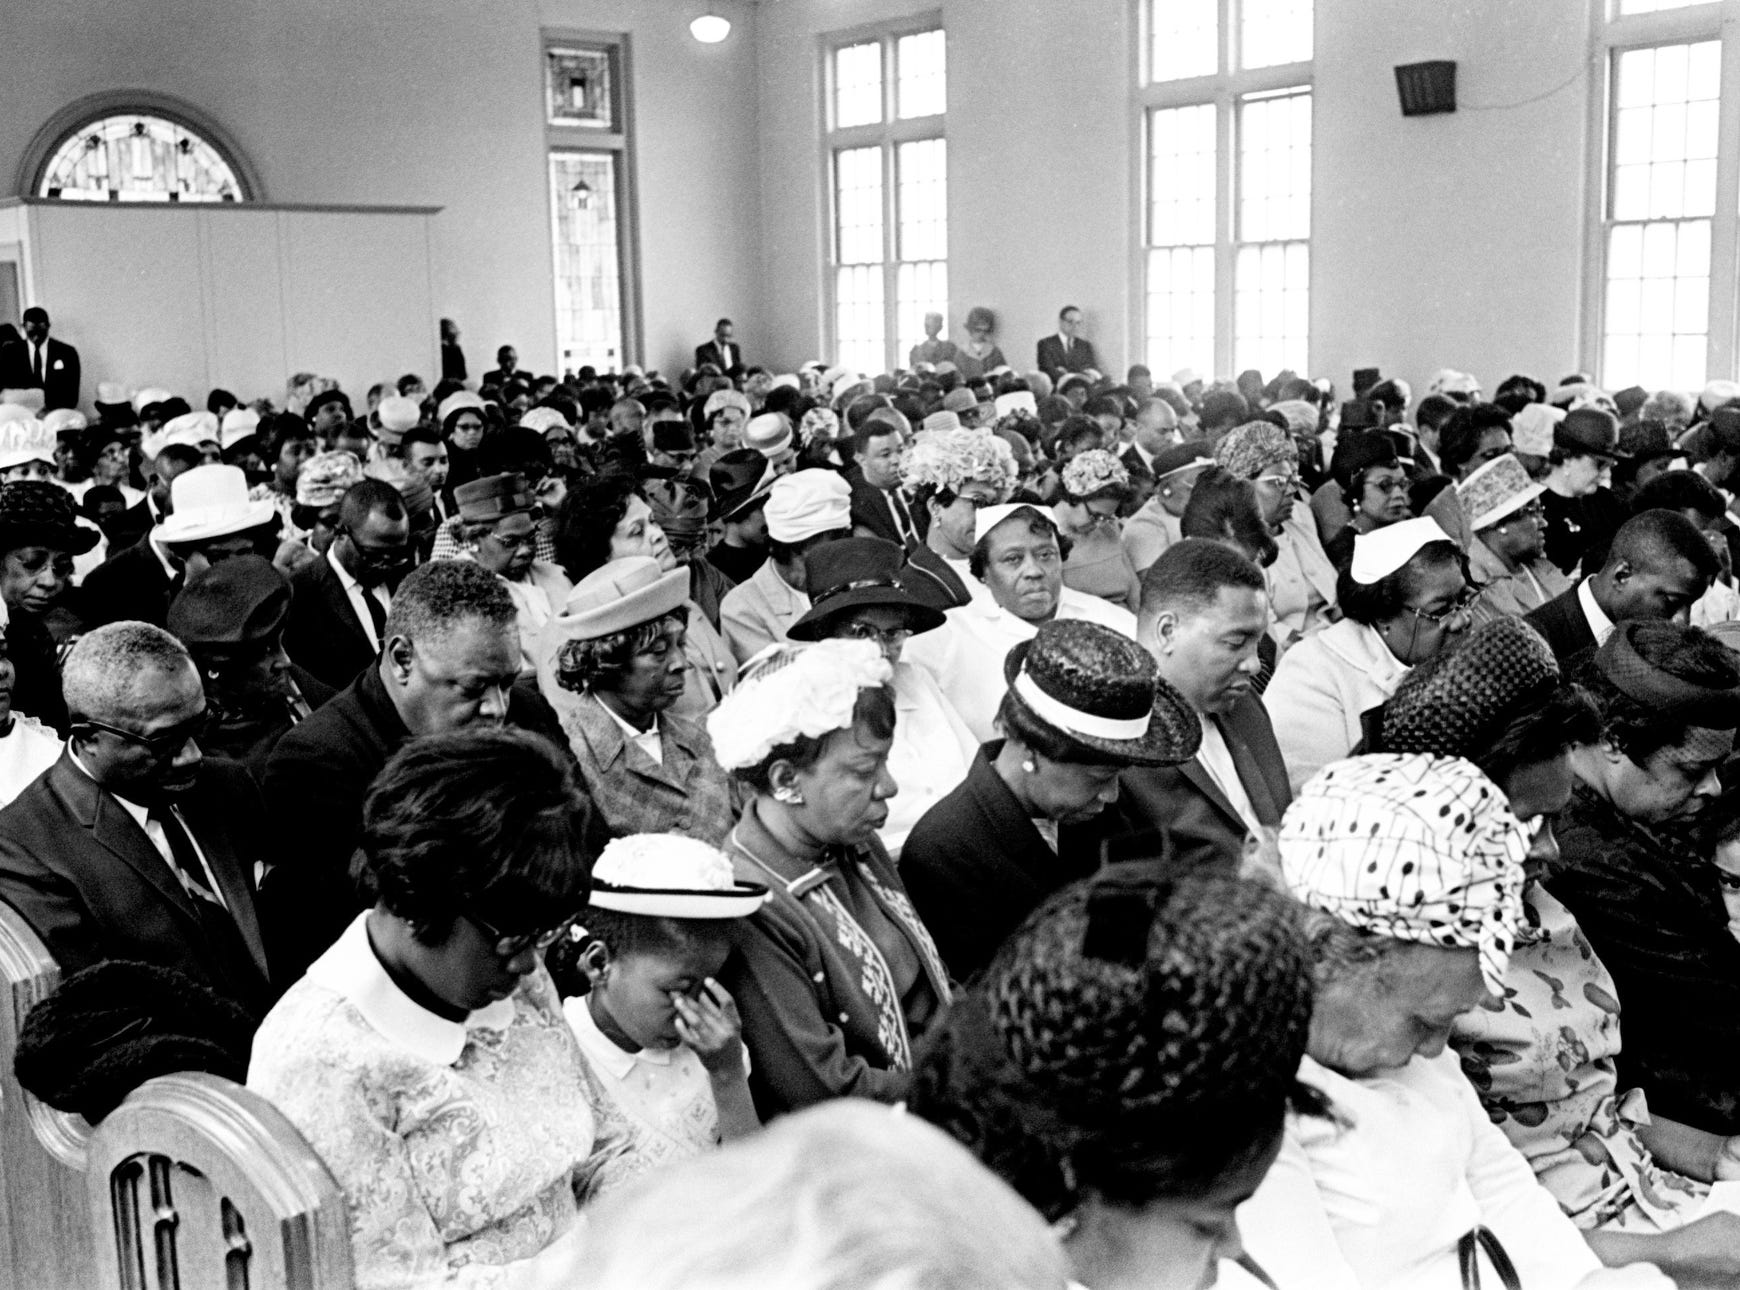 A packed house of 1,500 people pray during an interracial, interdenominational memorial service for the Rev. Martin Luther King Jr. at Gordon Memorial Church in Nashville on April 7, 1968.